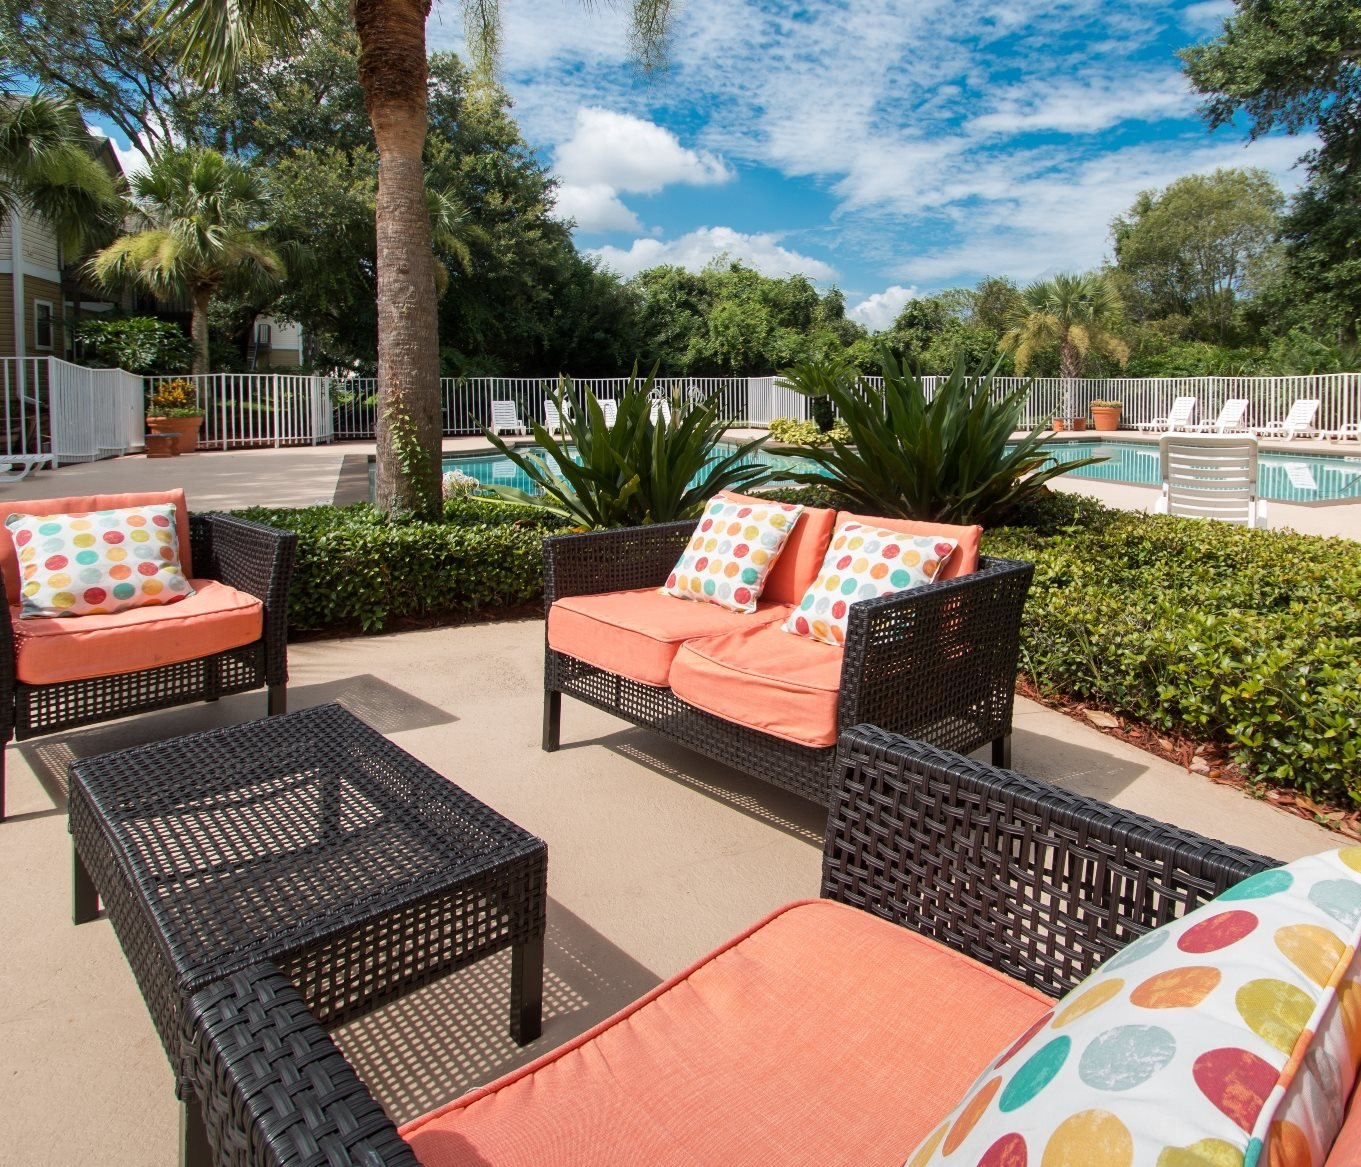 Gardenvillage Apartments: Apartments In Winter Garden, FL